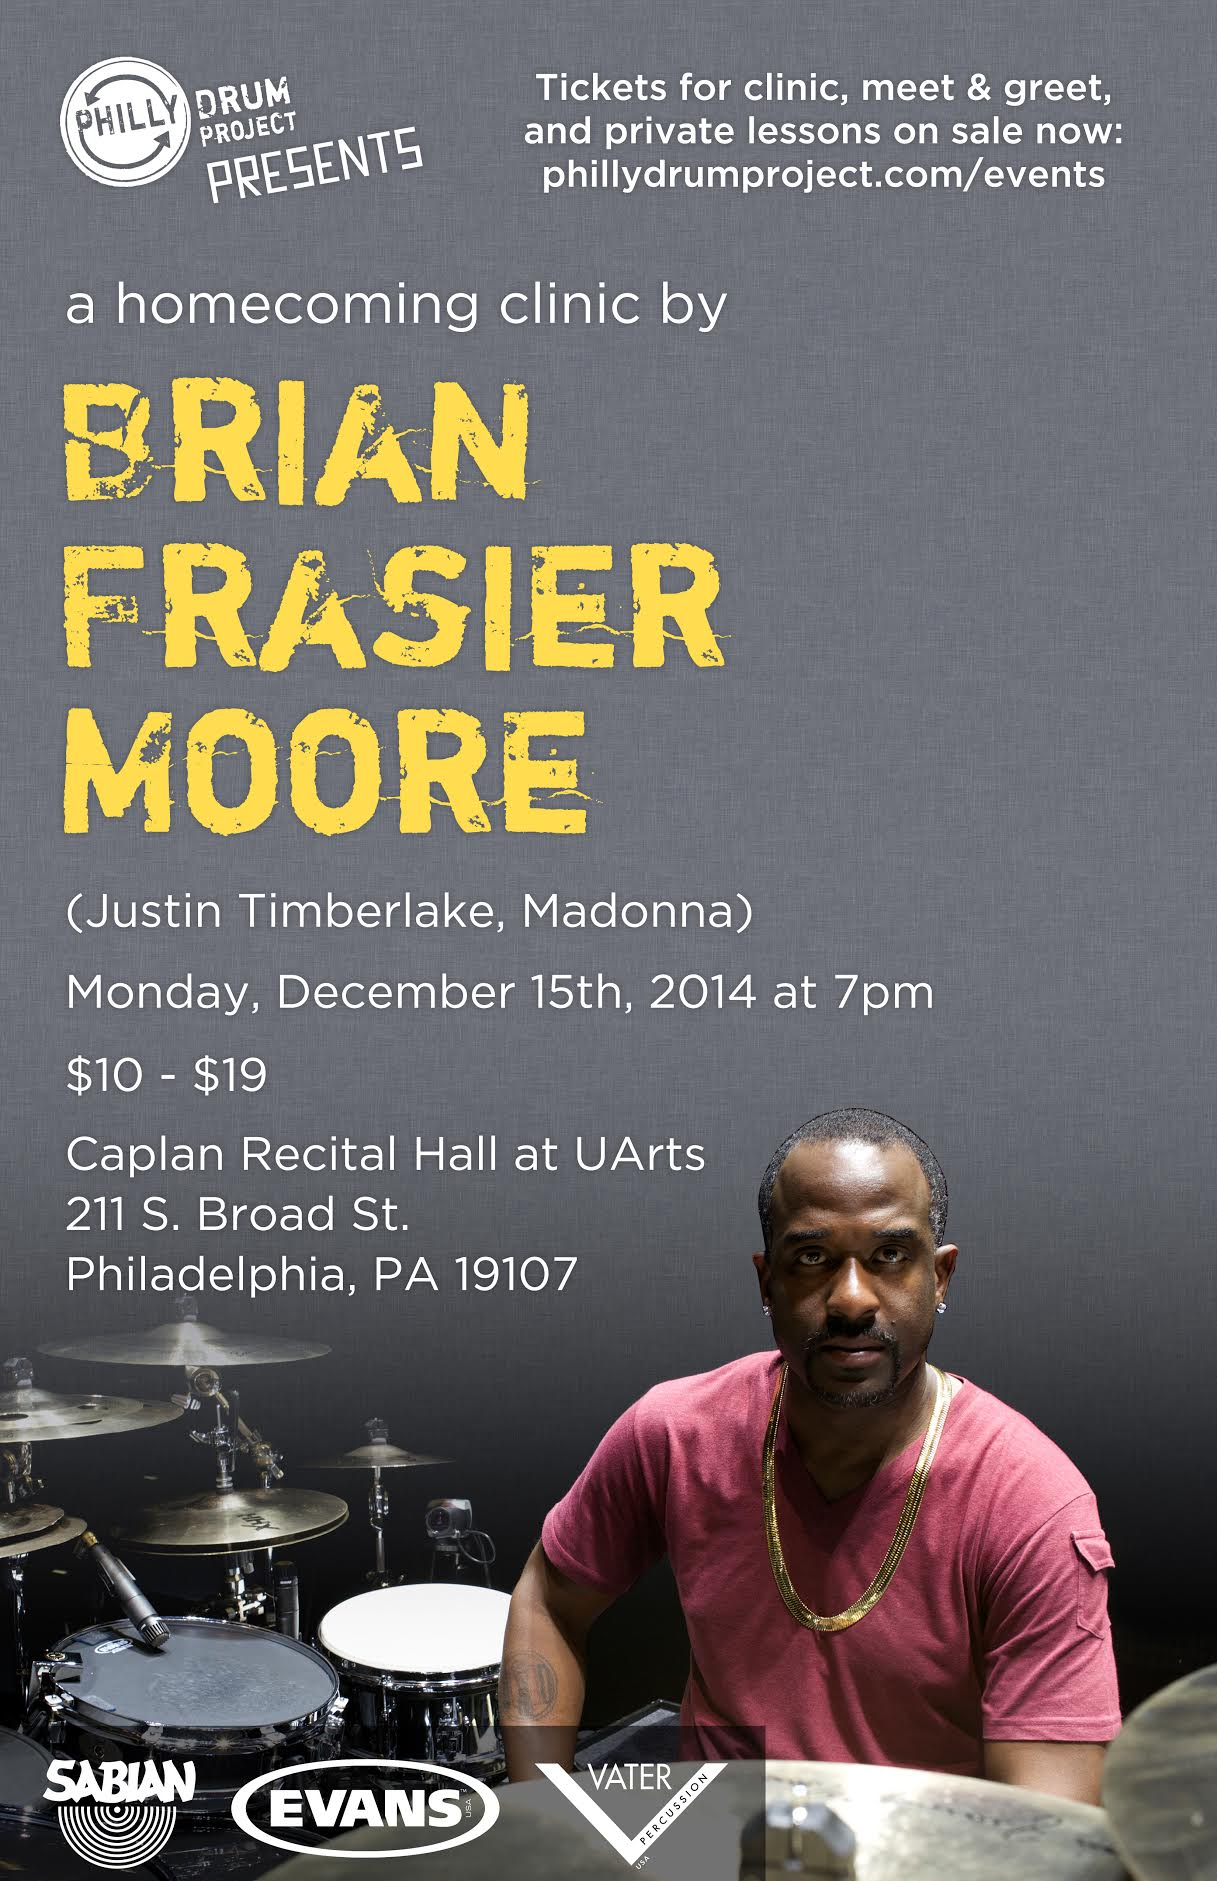 Brian Frasier Moore Homecoming Clinic